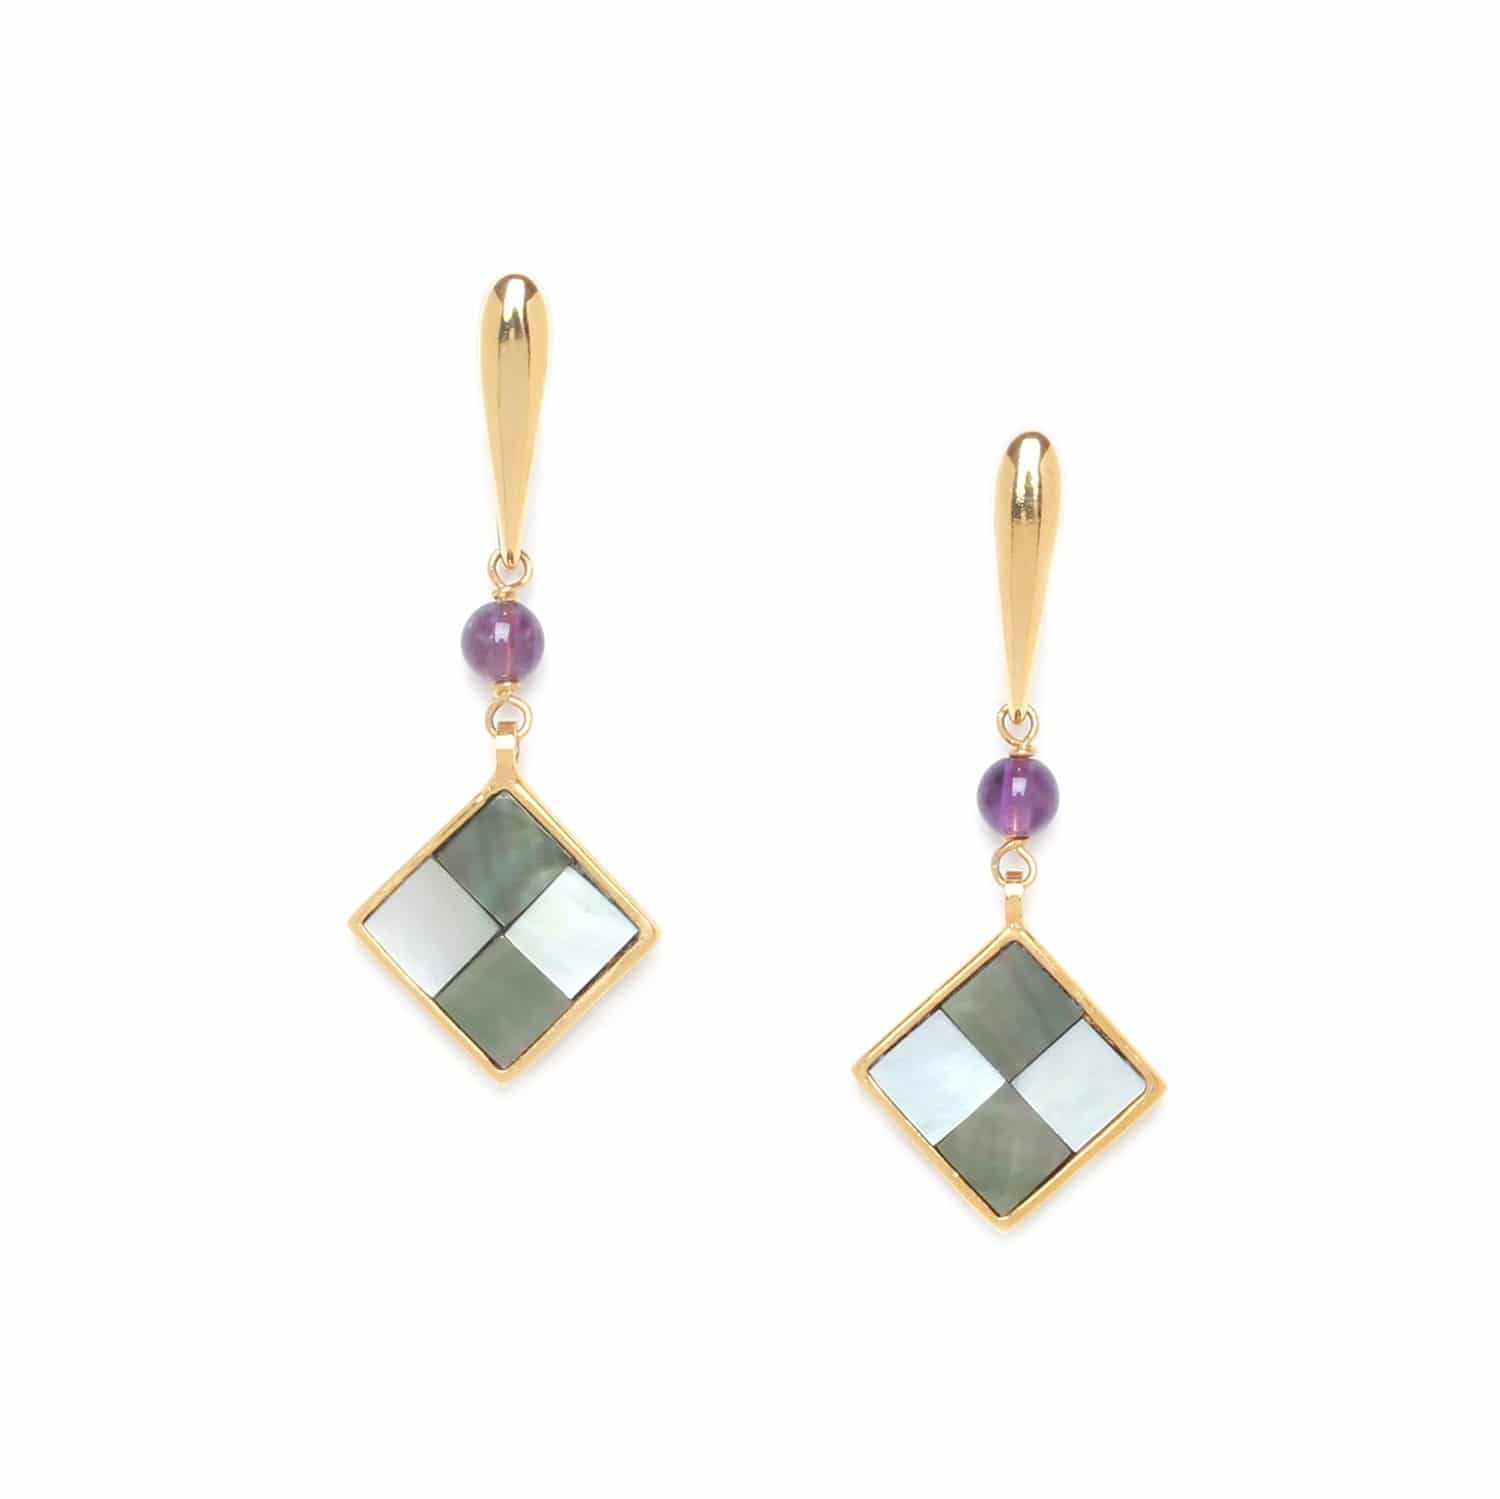 LE SQUARE one amethyst bead earrings